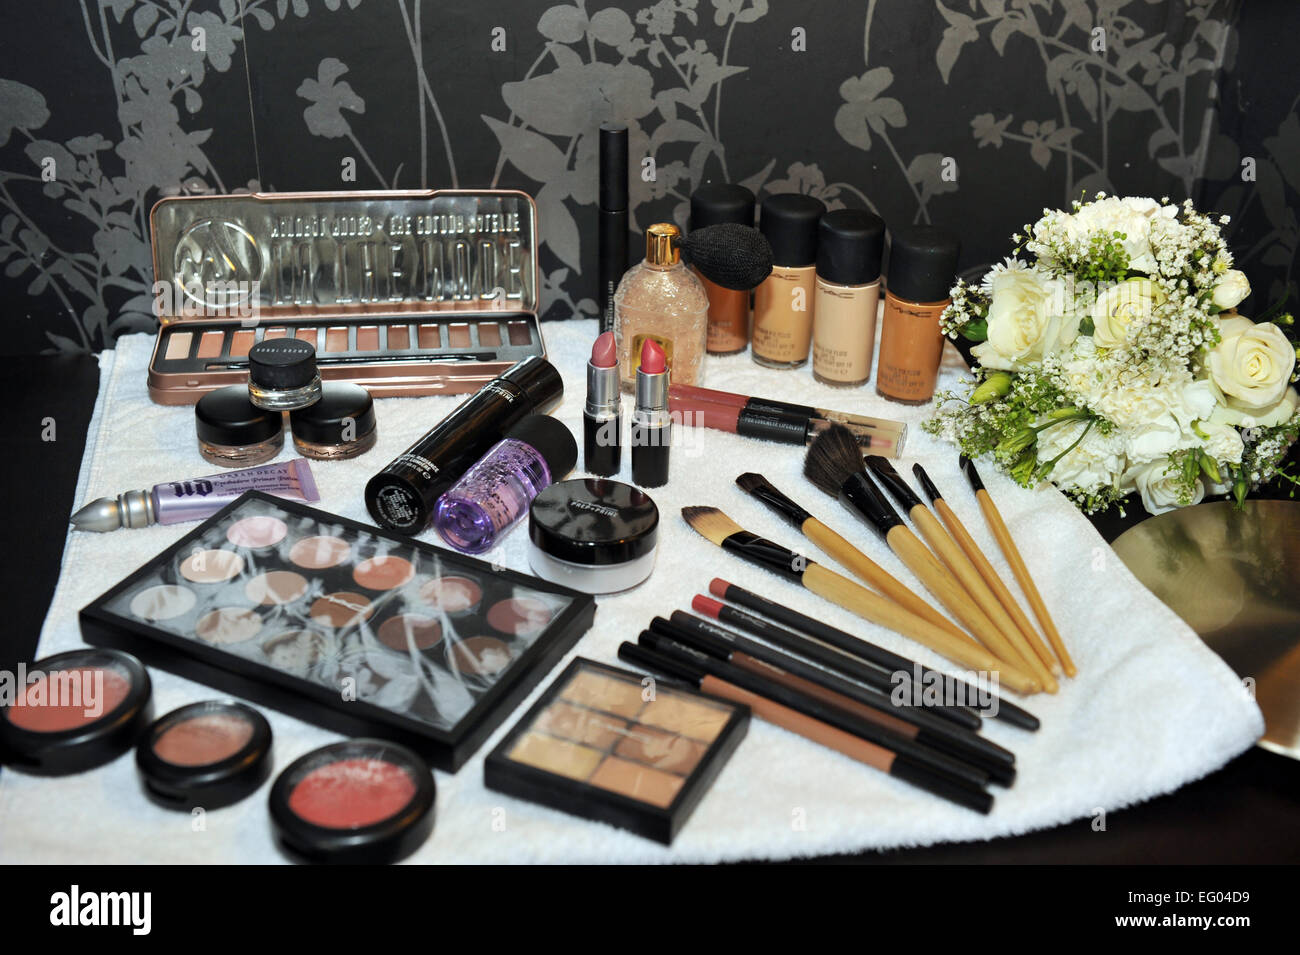 Makeup laid out ready for bridal preparations. - Stock Image